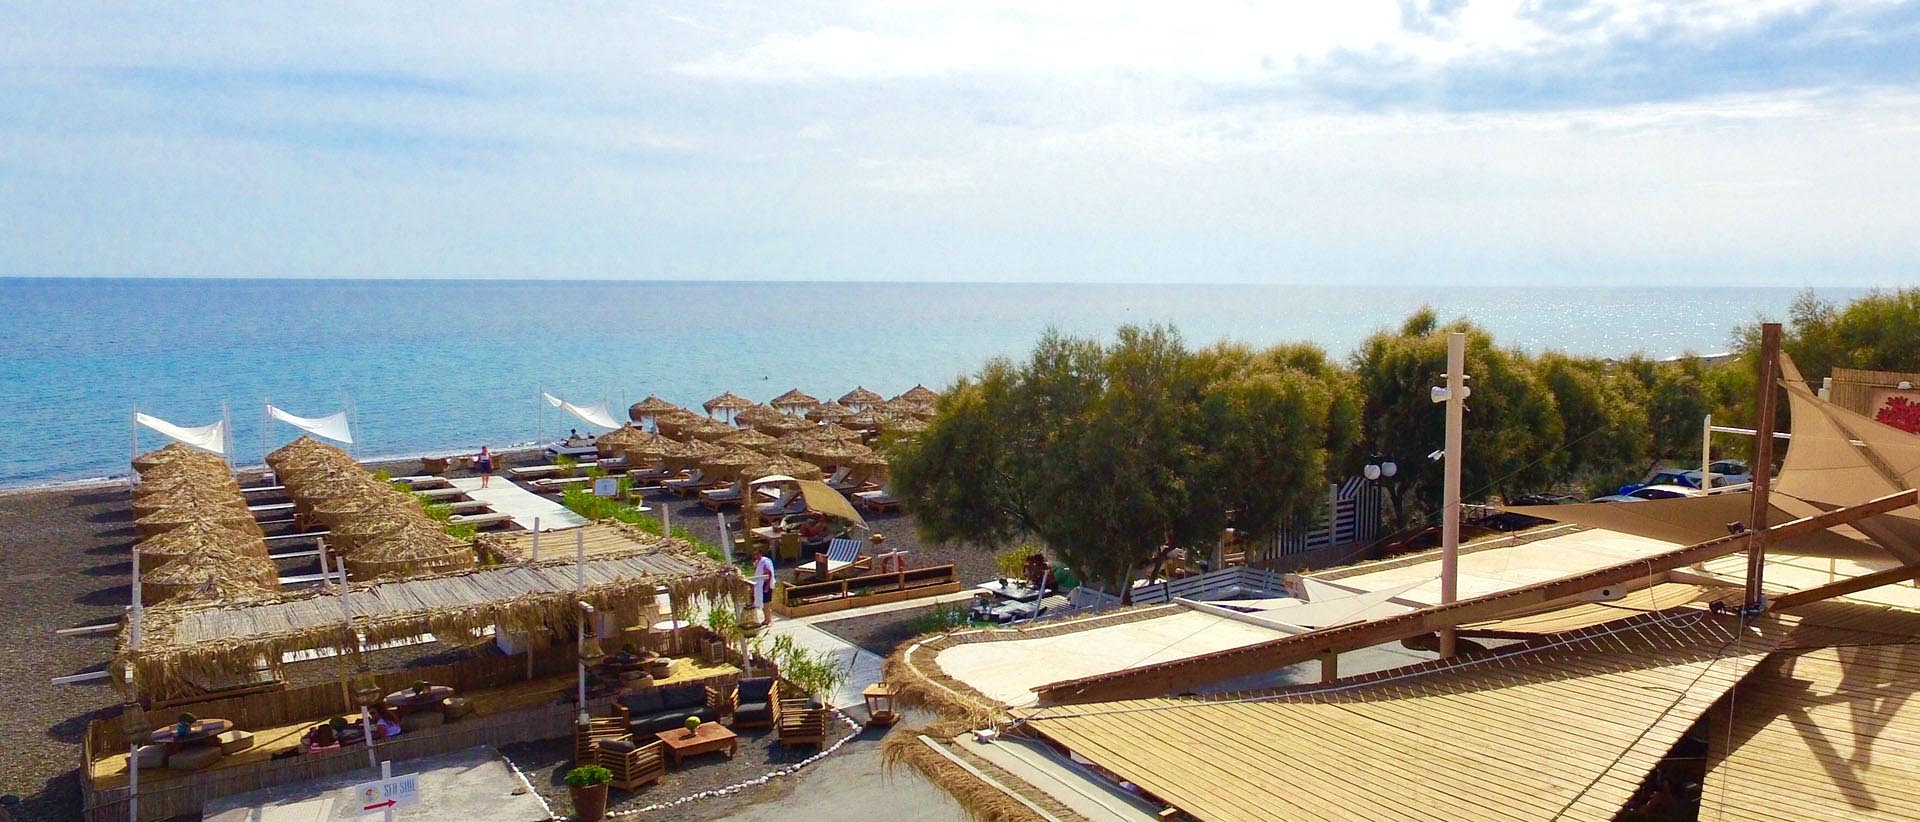 One of the coast's most beautiful beach bars for swimming and relaxing.